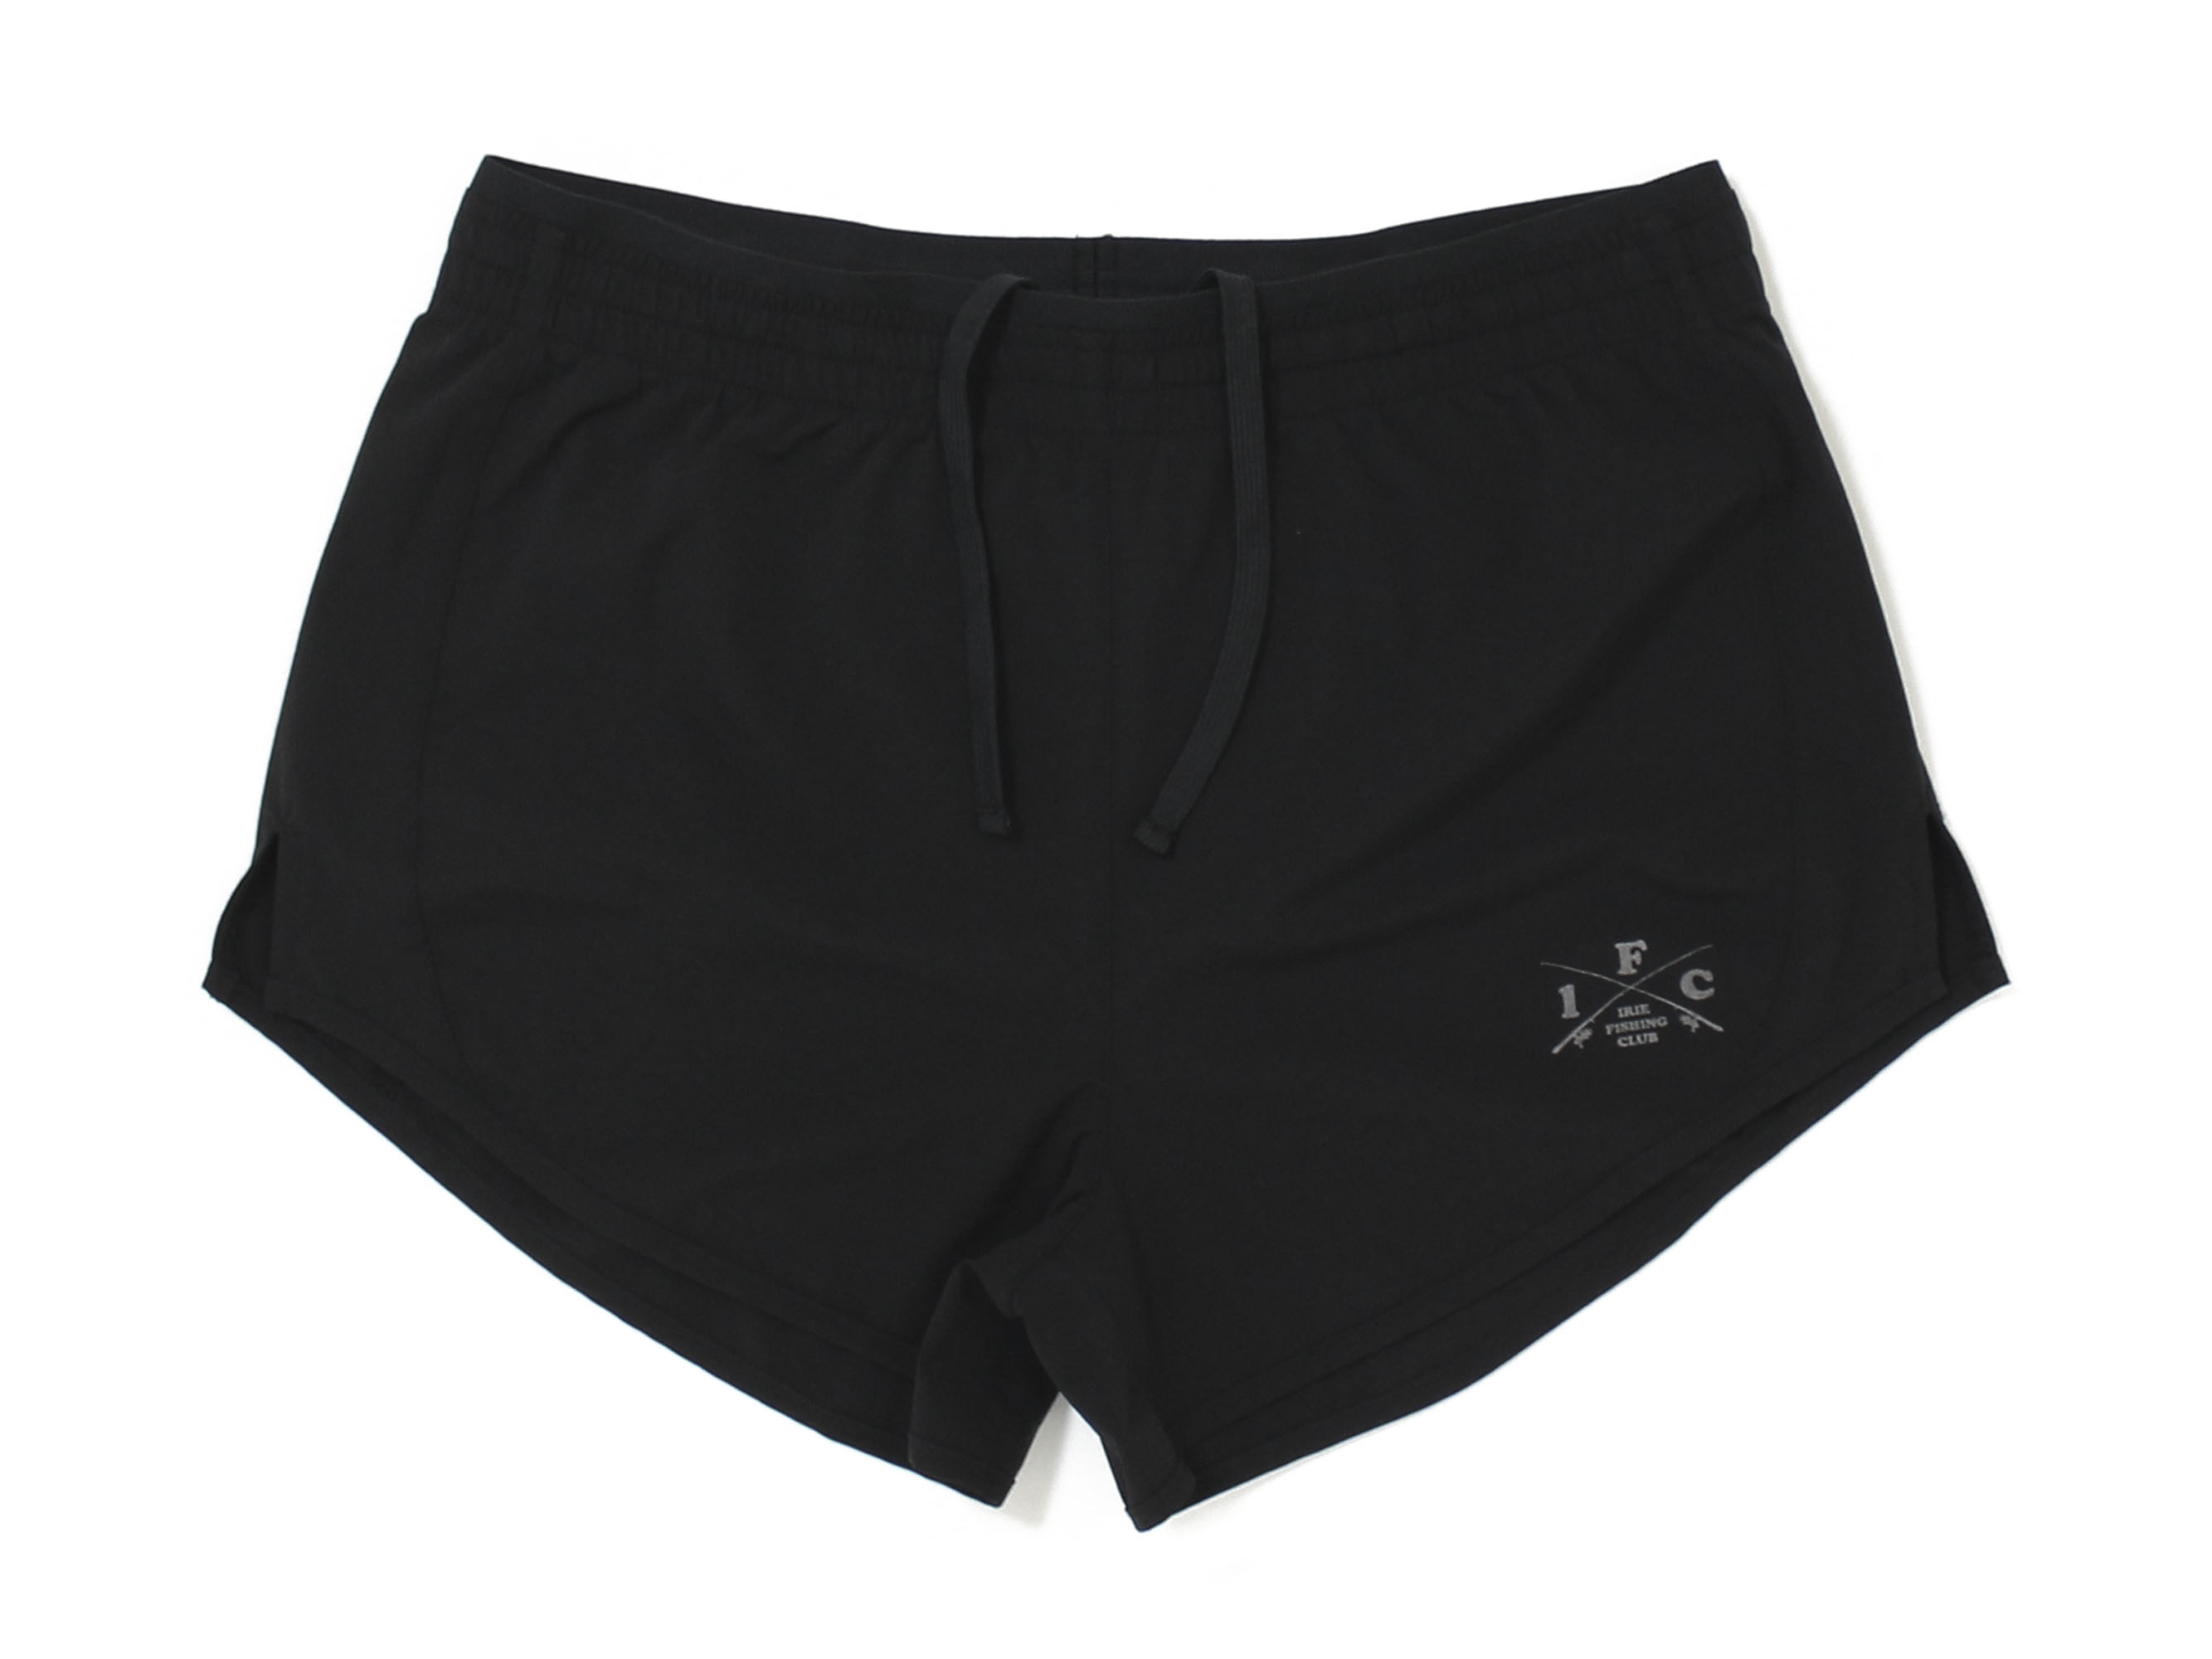 IFC SHORTS FOR LADY'S - IRIE FISHING CLUB